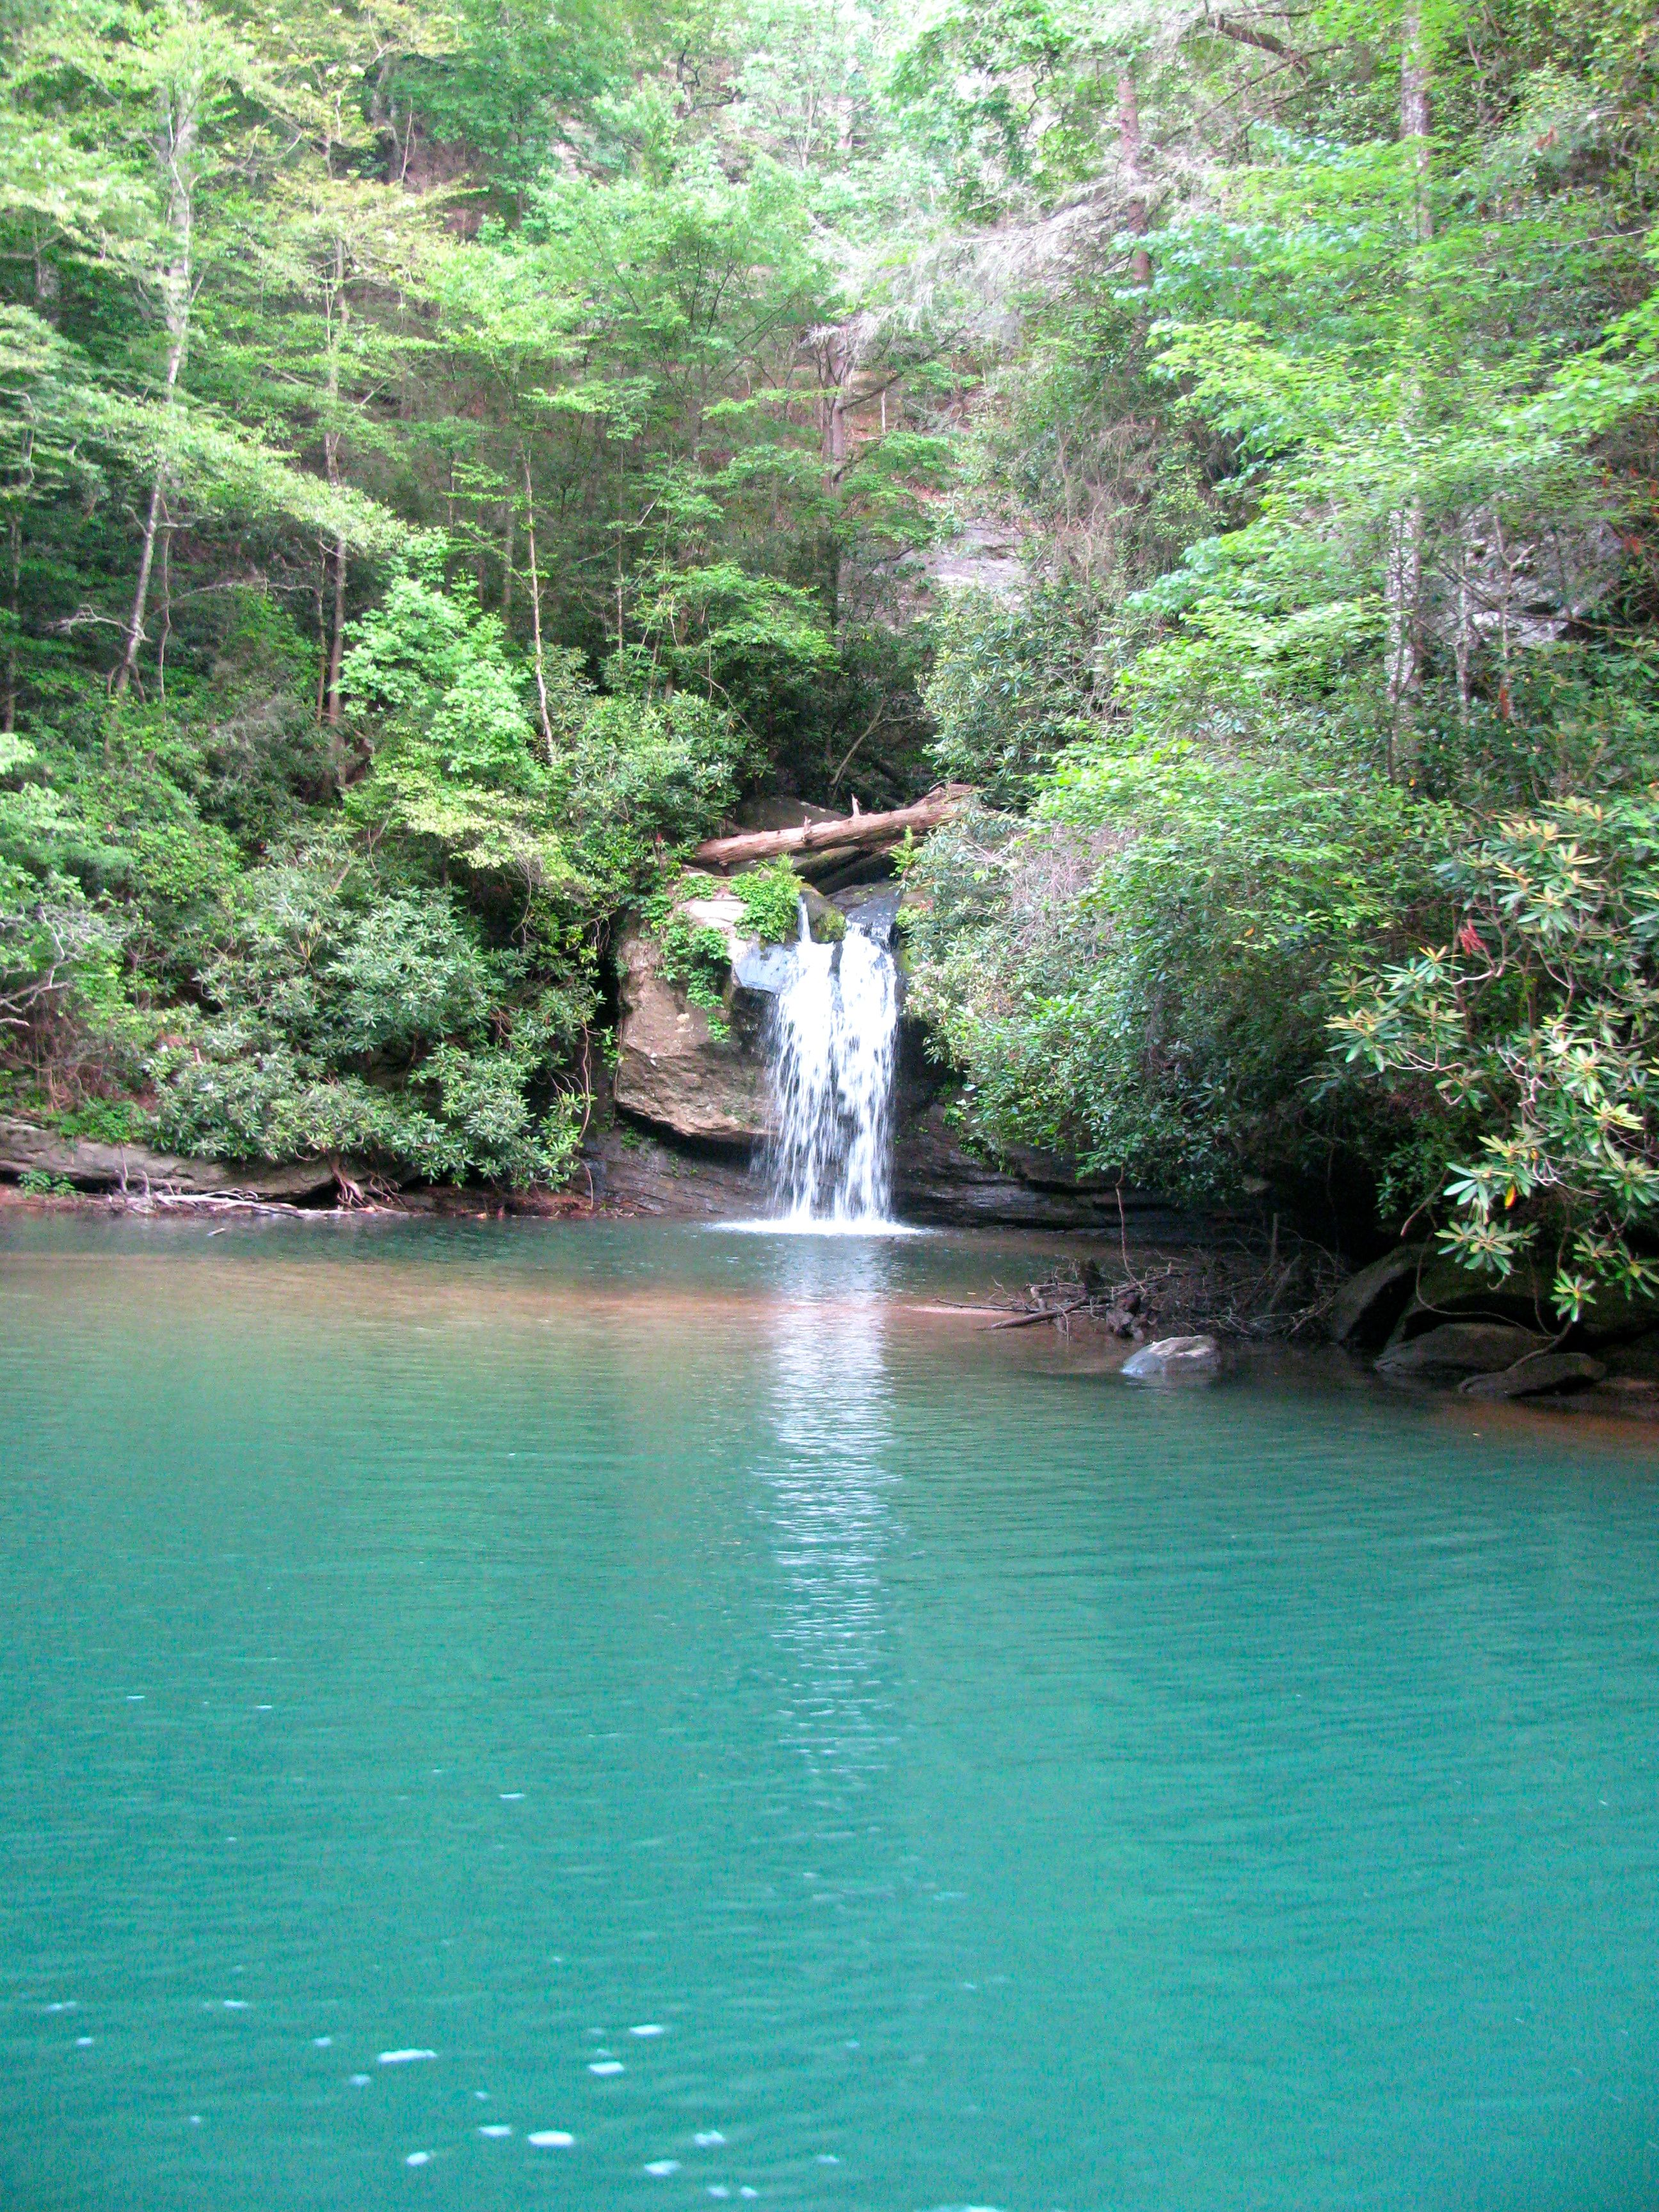 Lake Jocee Sc I Wanna Go Turquoise Water Swimming Holes White Sand Hiking And Best Thing Is A Handful Of Waterfalls Only An Hour From My Family